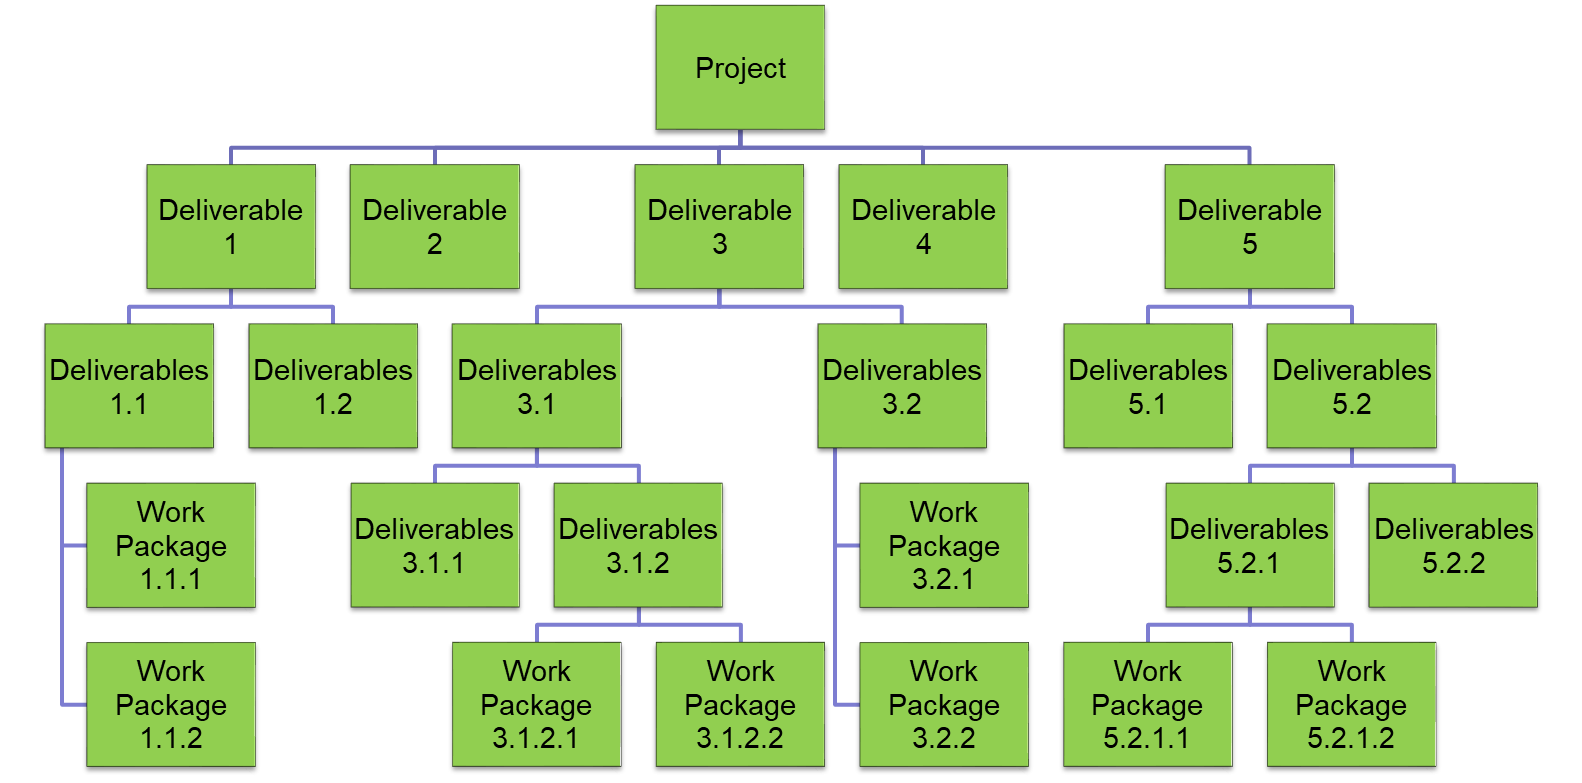 WBS with project deliverables at top level